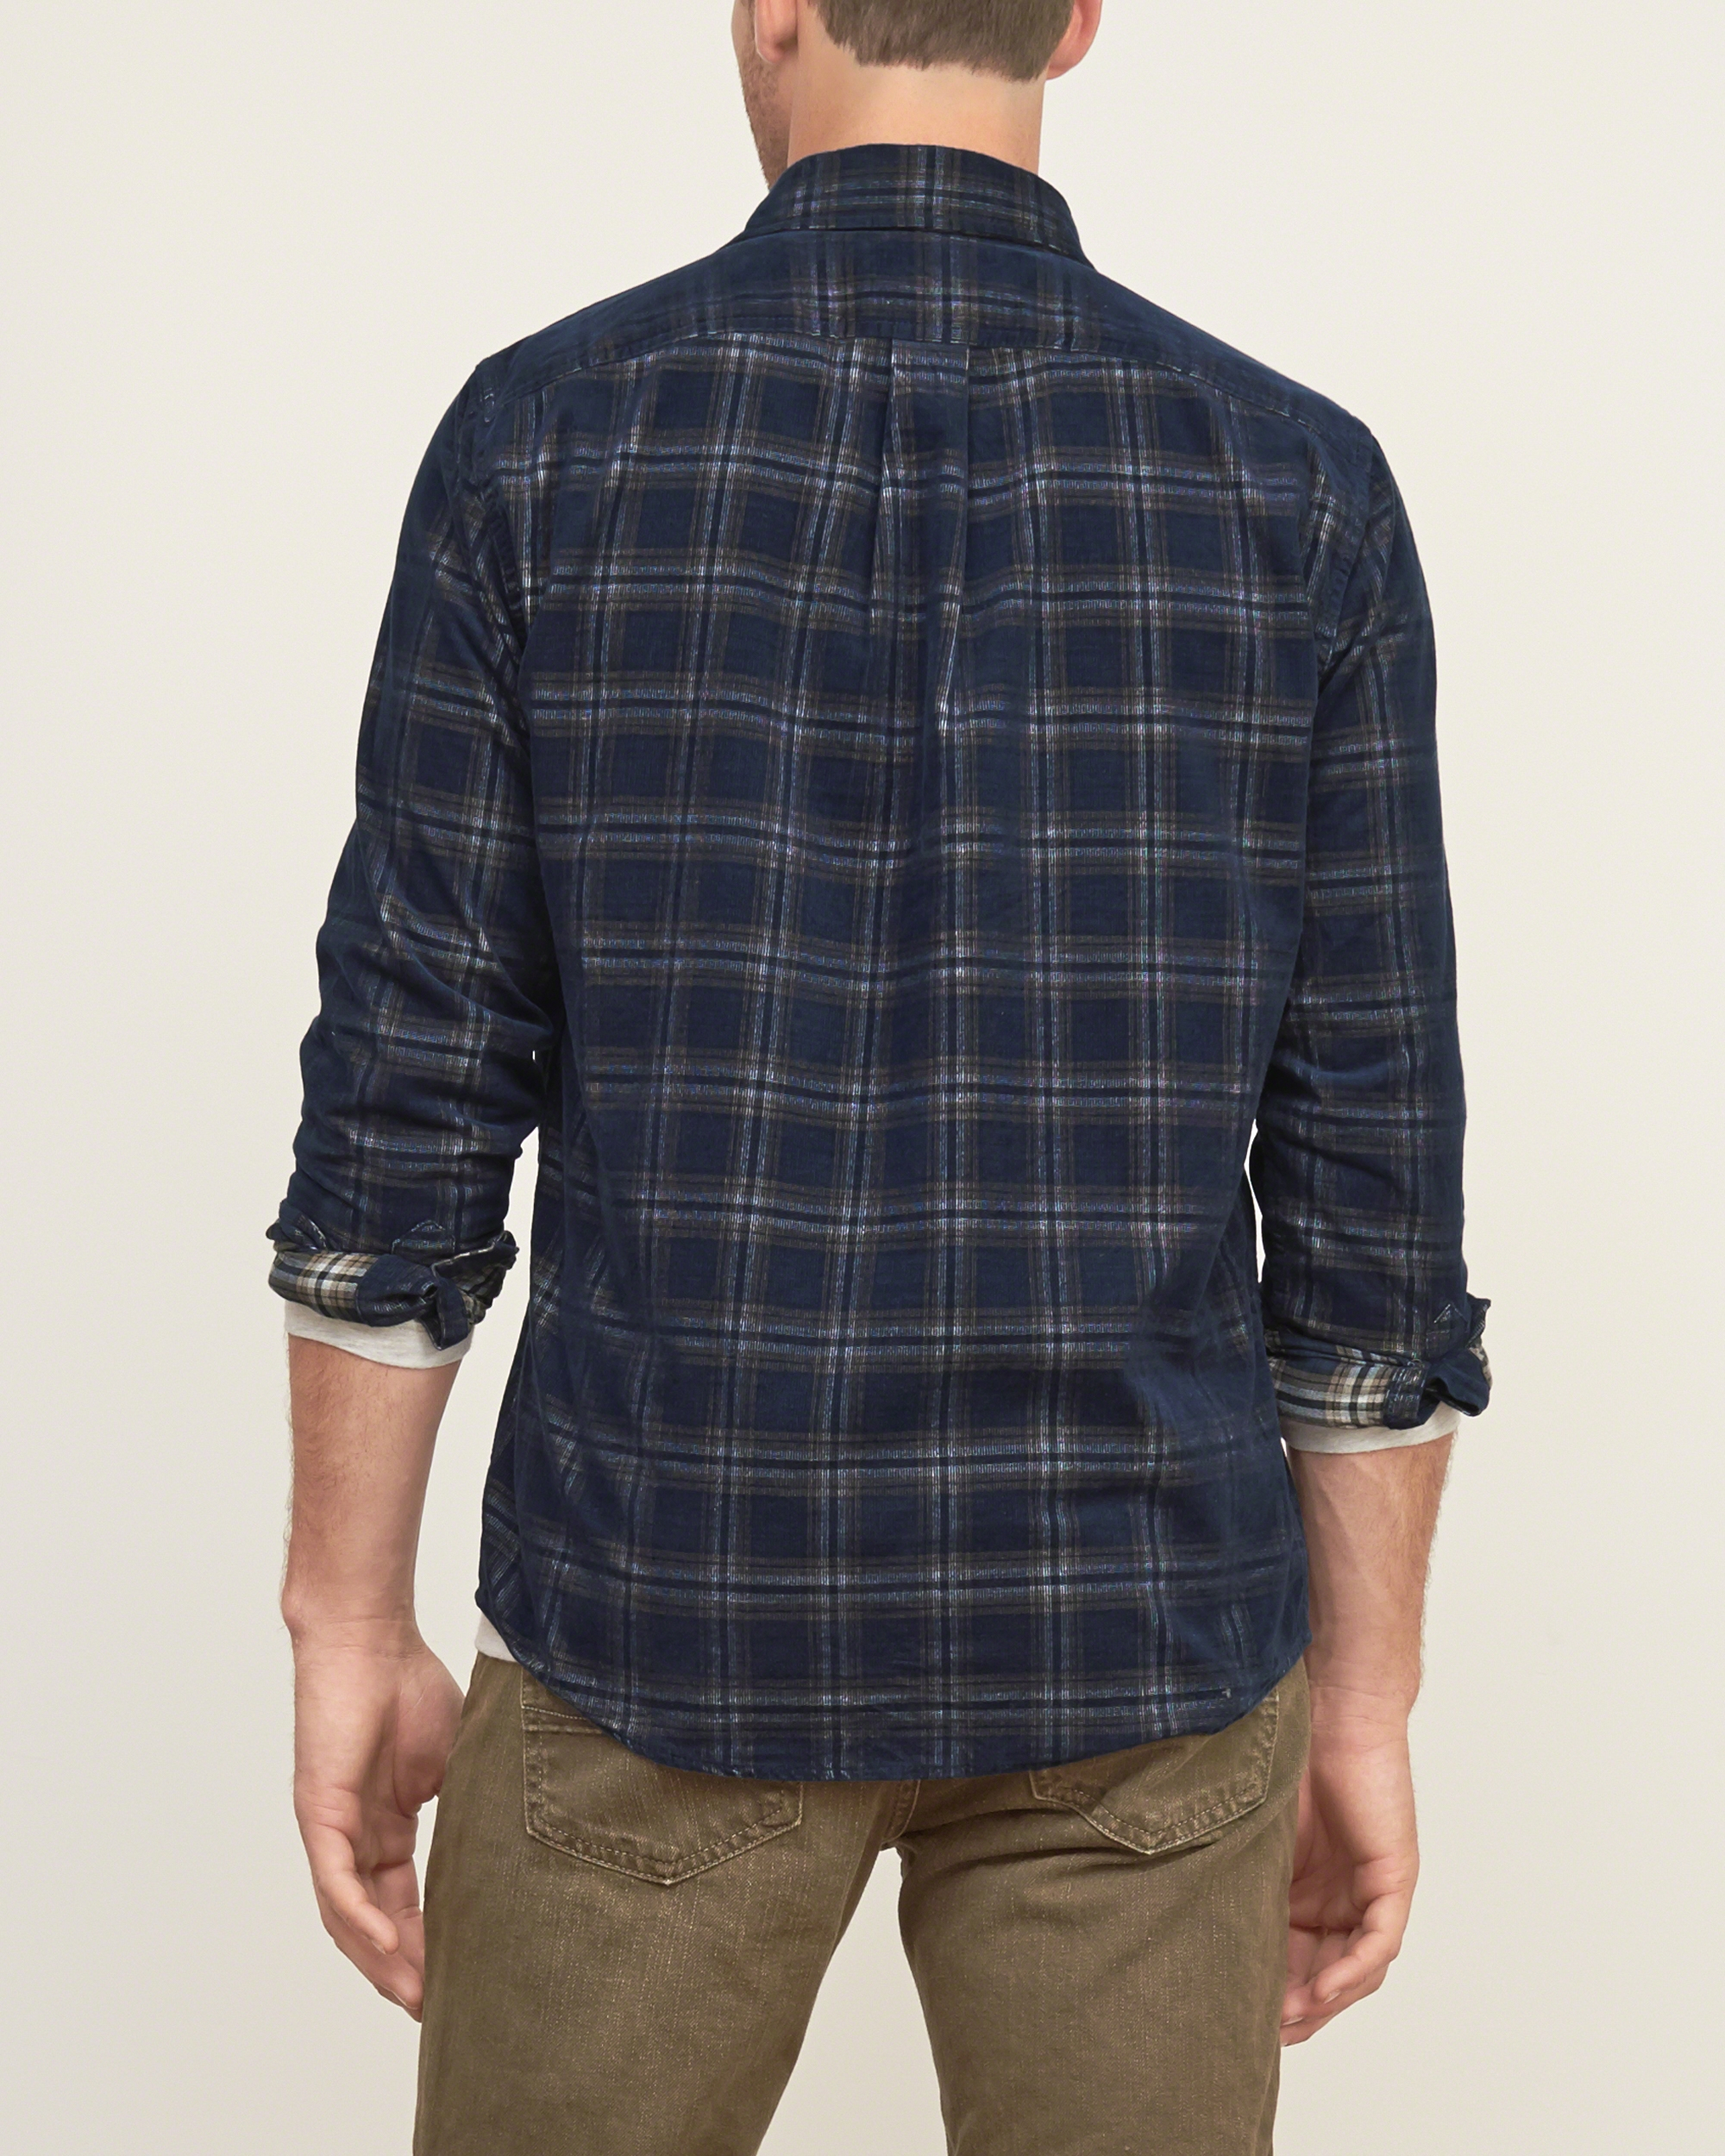 lyst abercrombie amp fitch plaid cotton shirt in blue for men